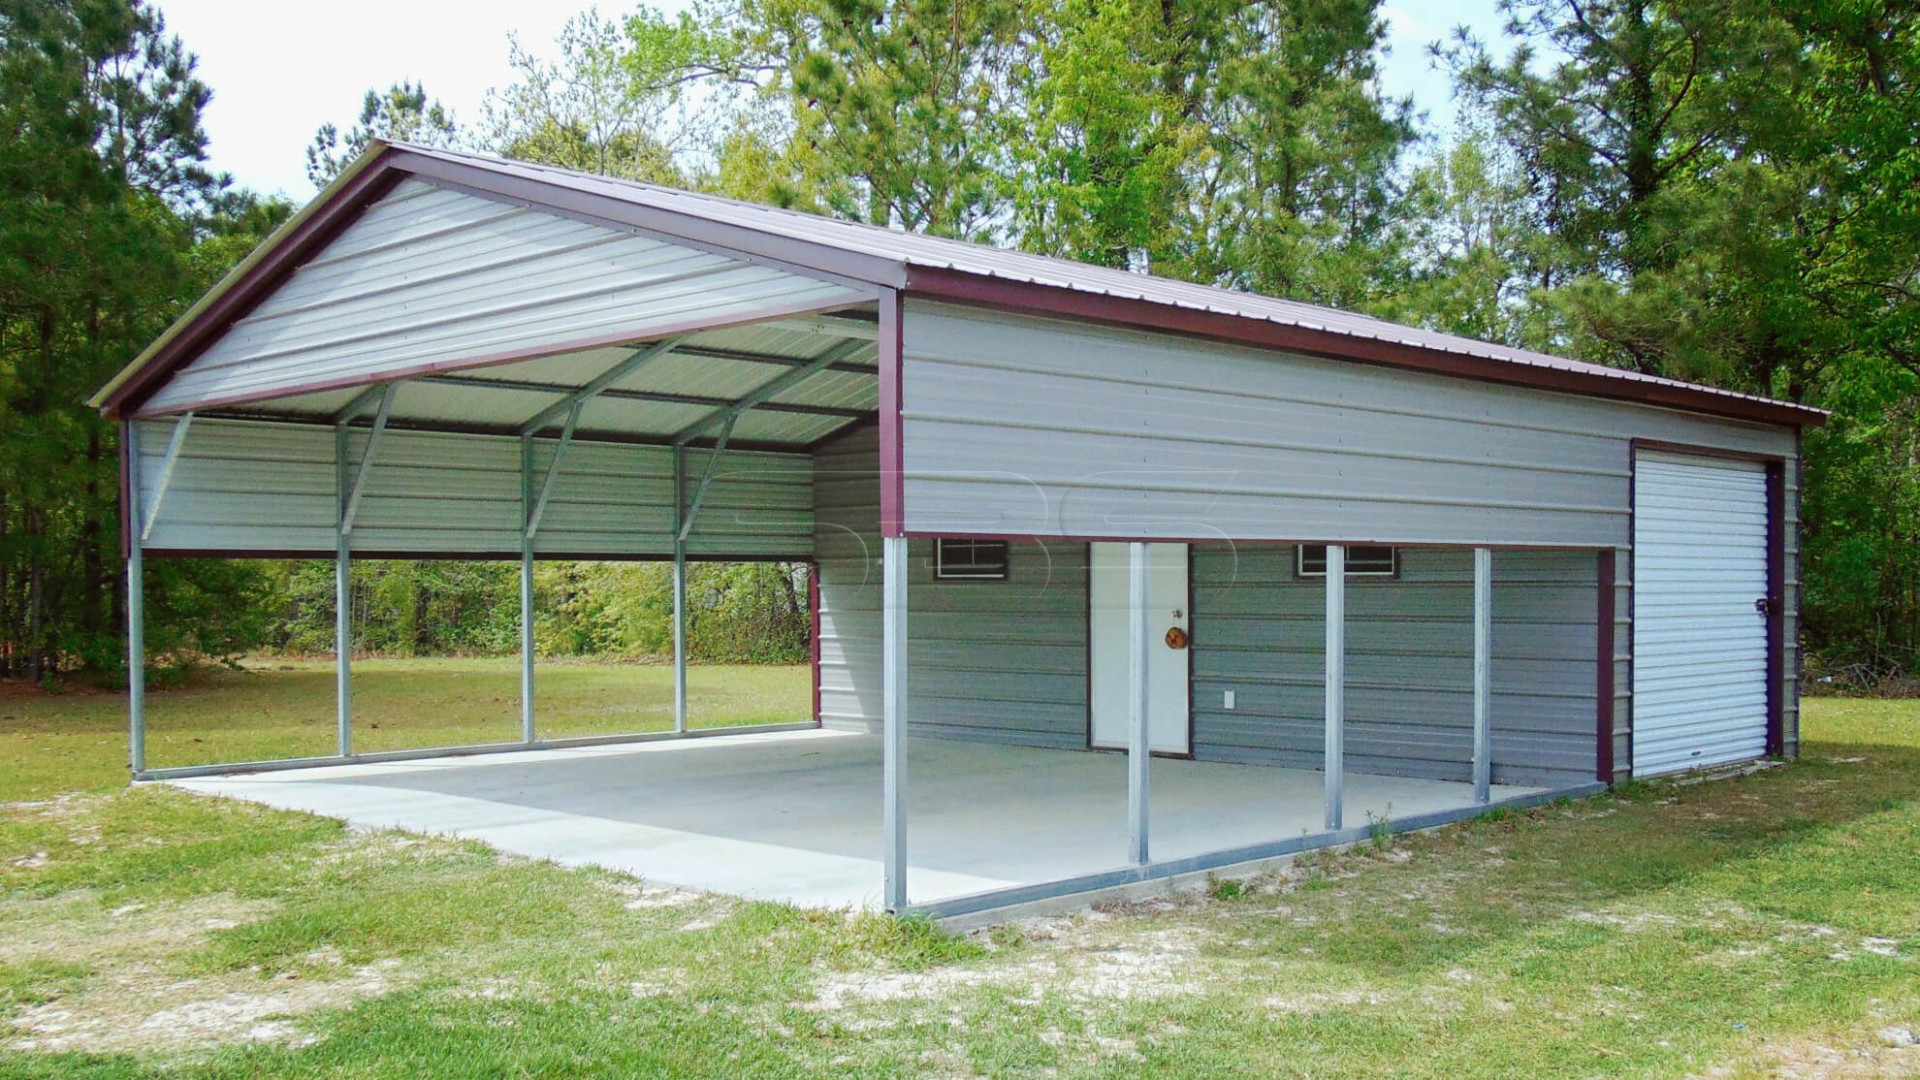 Carport Shed Combo Plans ~ Small Garden Storage Shed Rustic Garage Carport Ideas